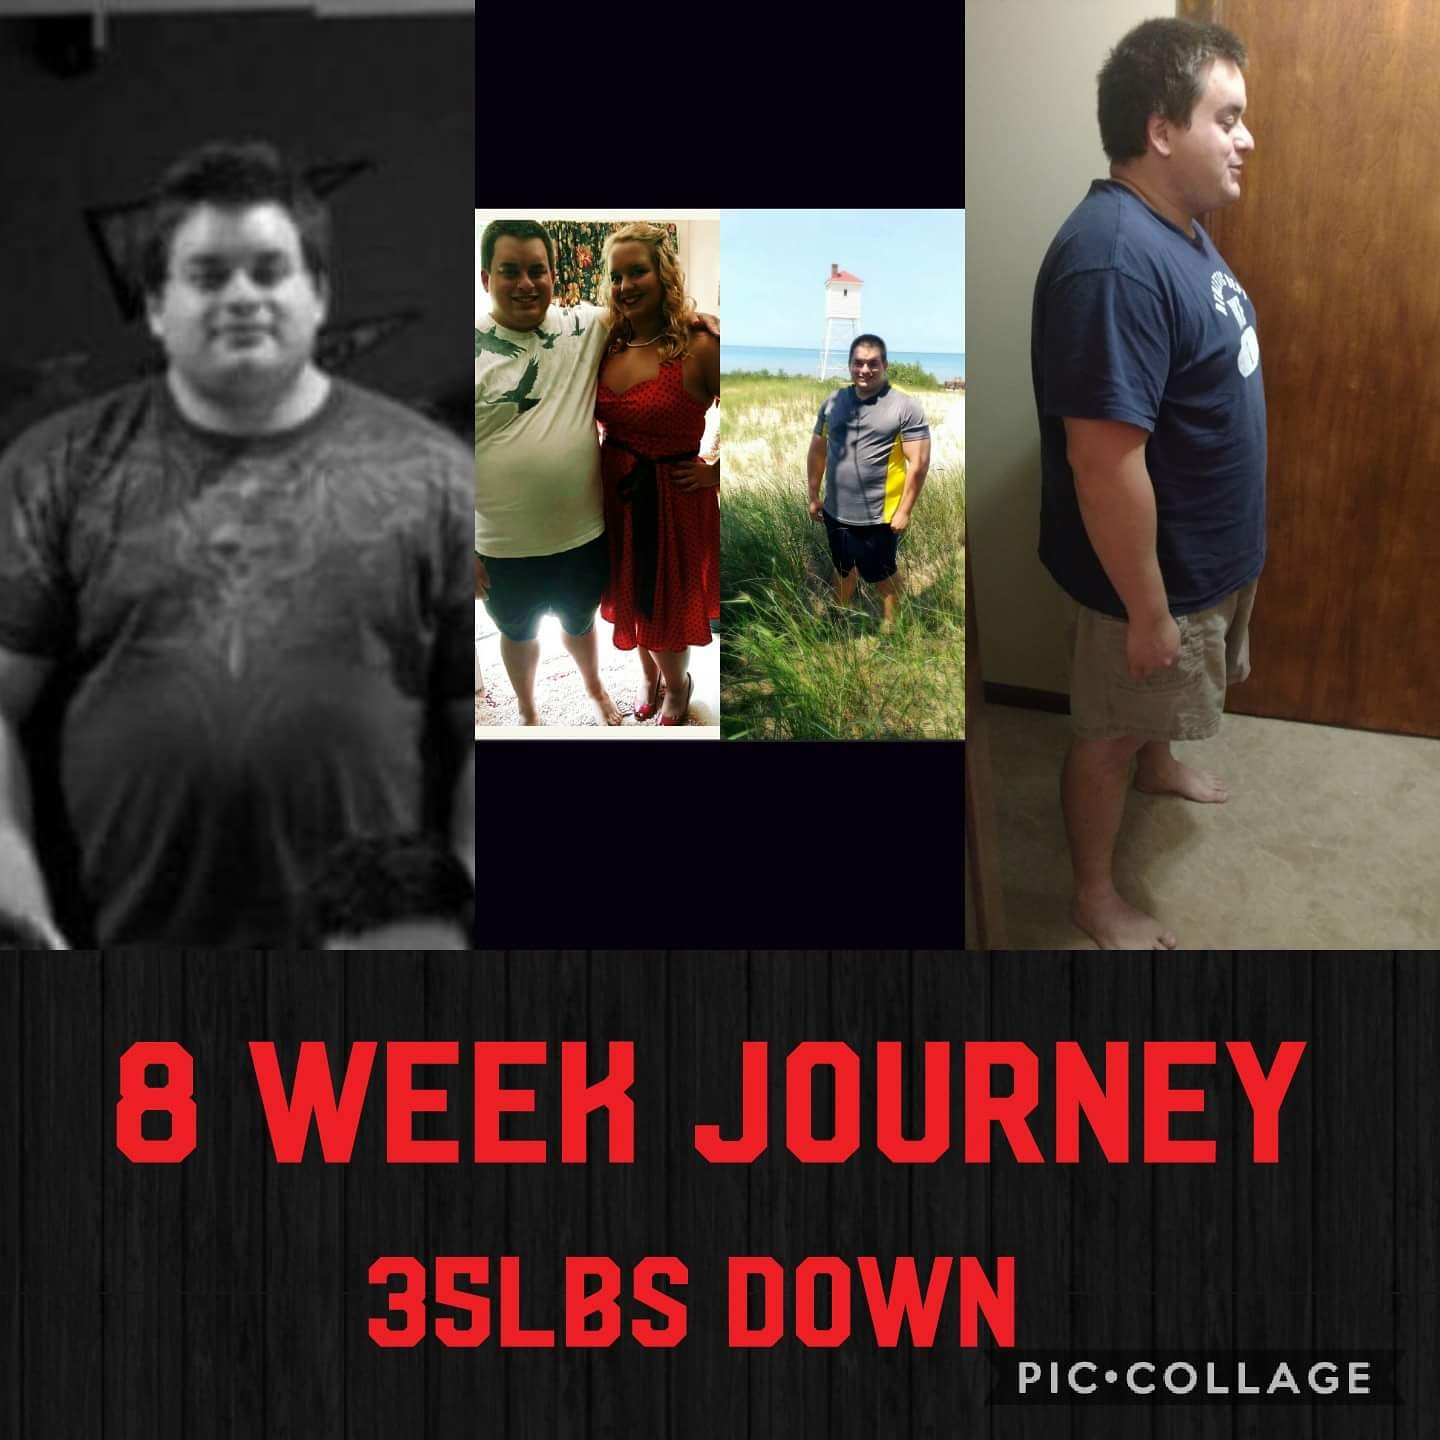 [Image] Weight Loss Journey so Far: 8 weeks.